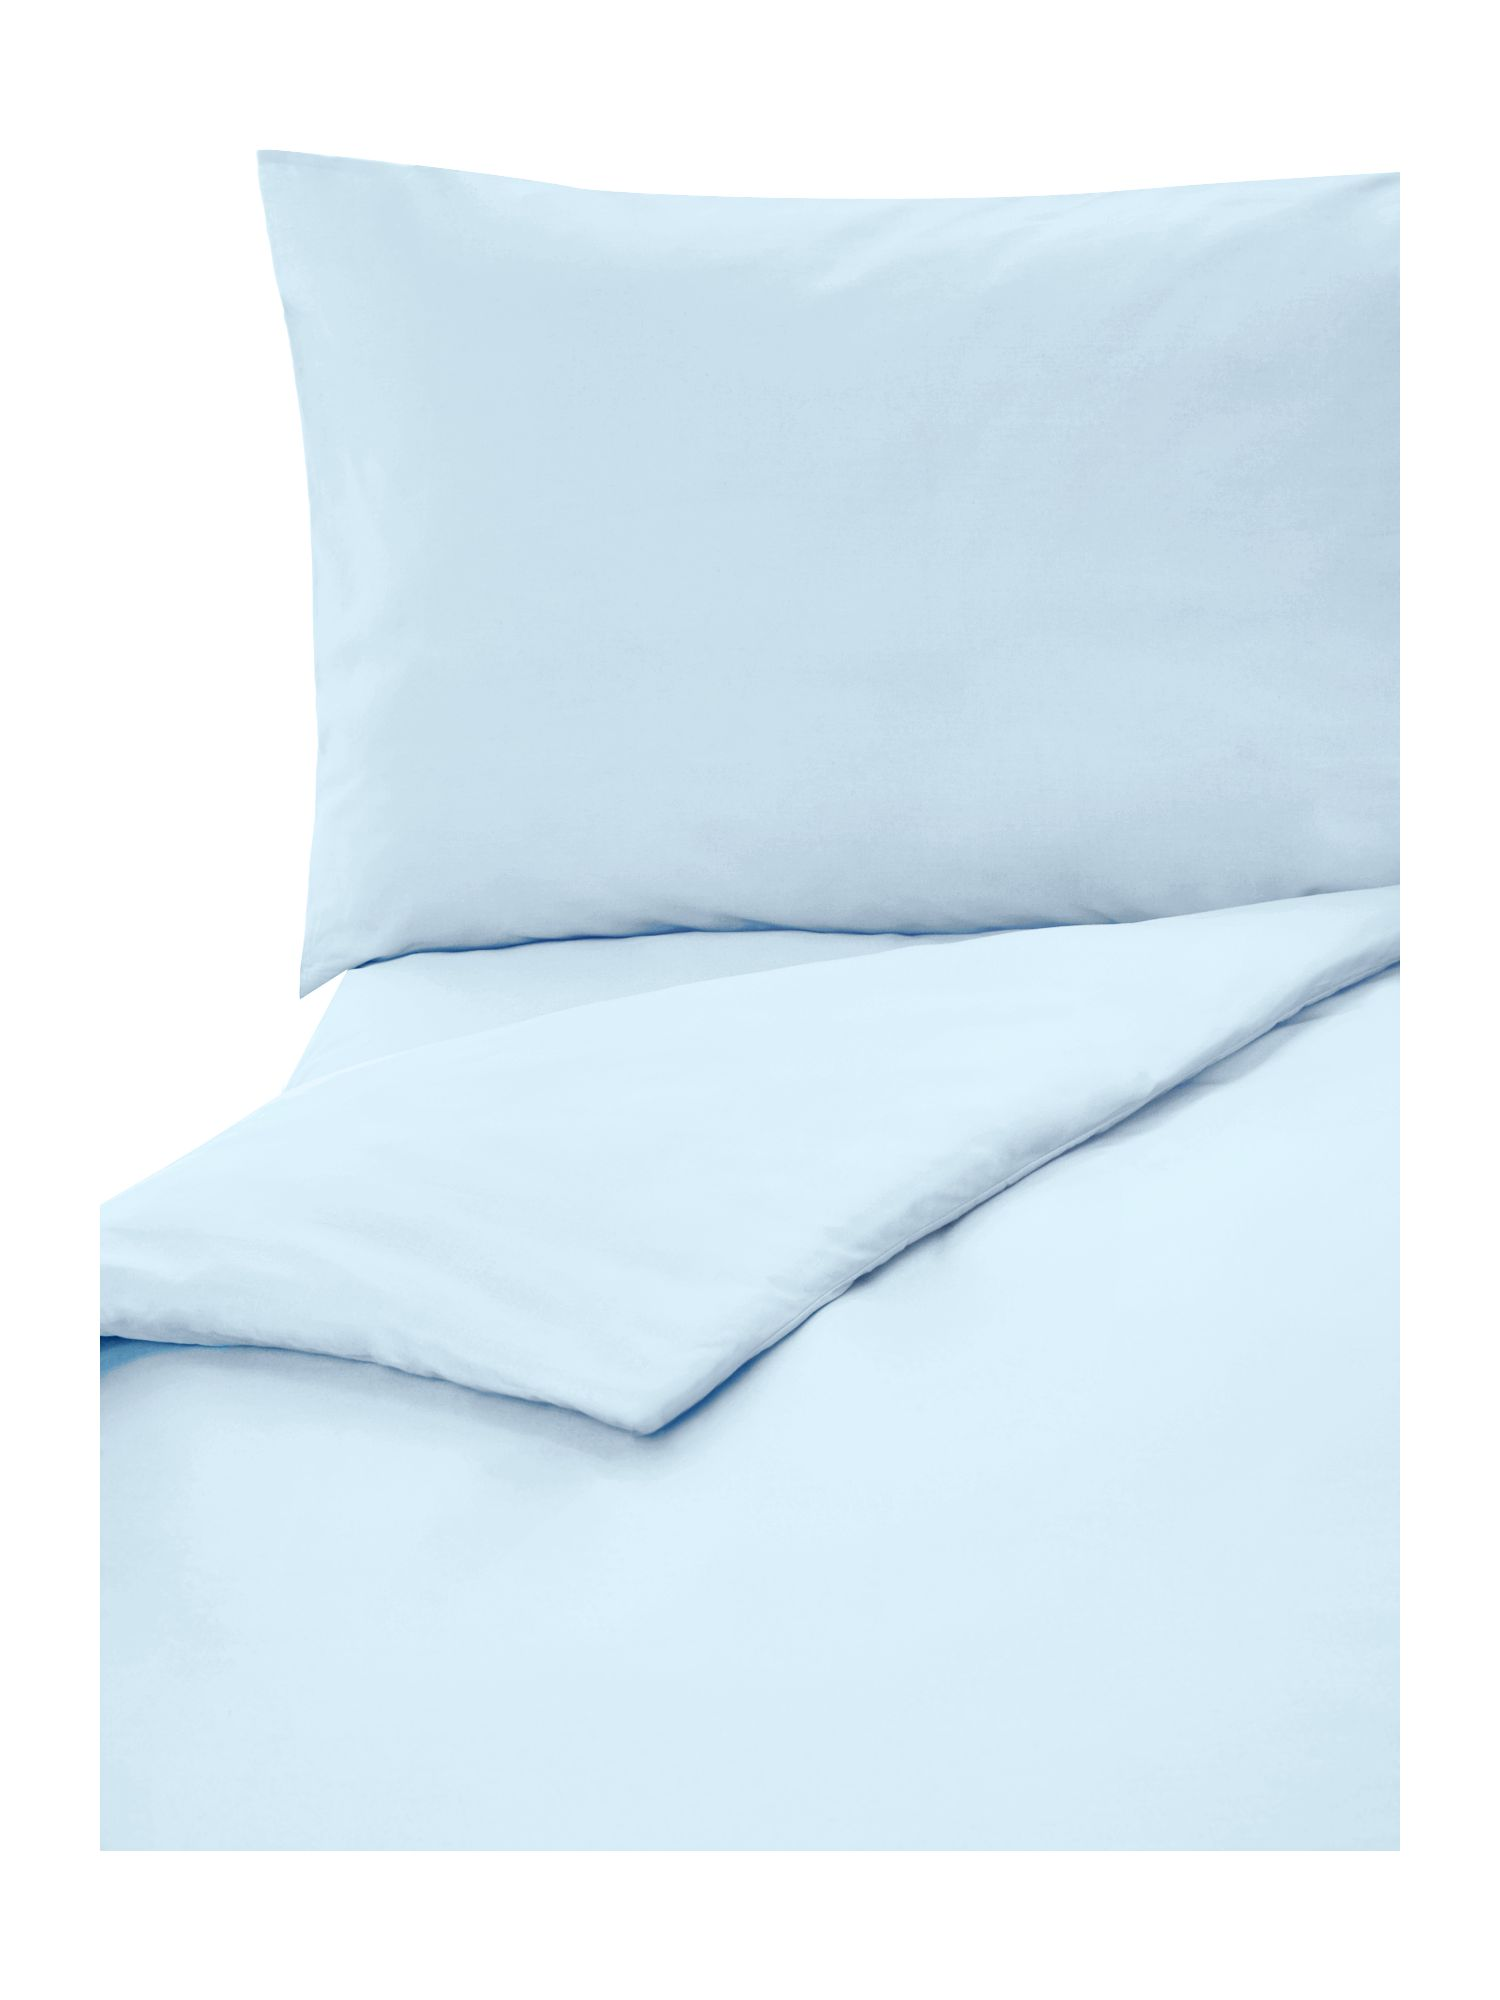 Powder blue single duvet cover